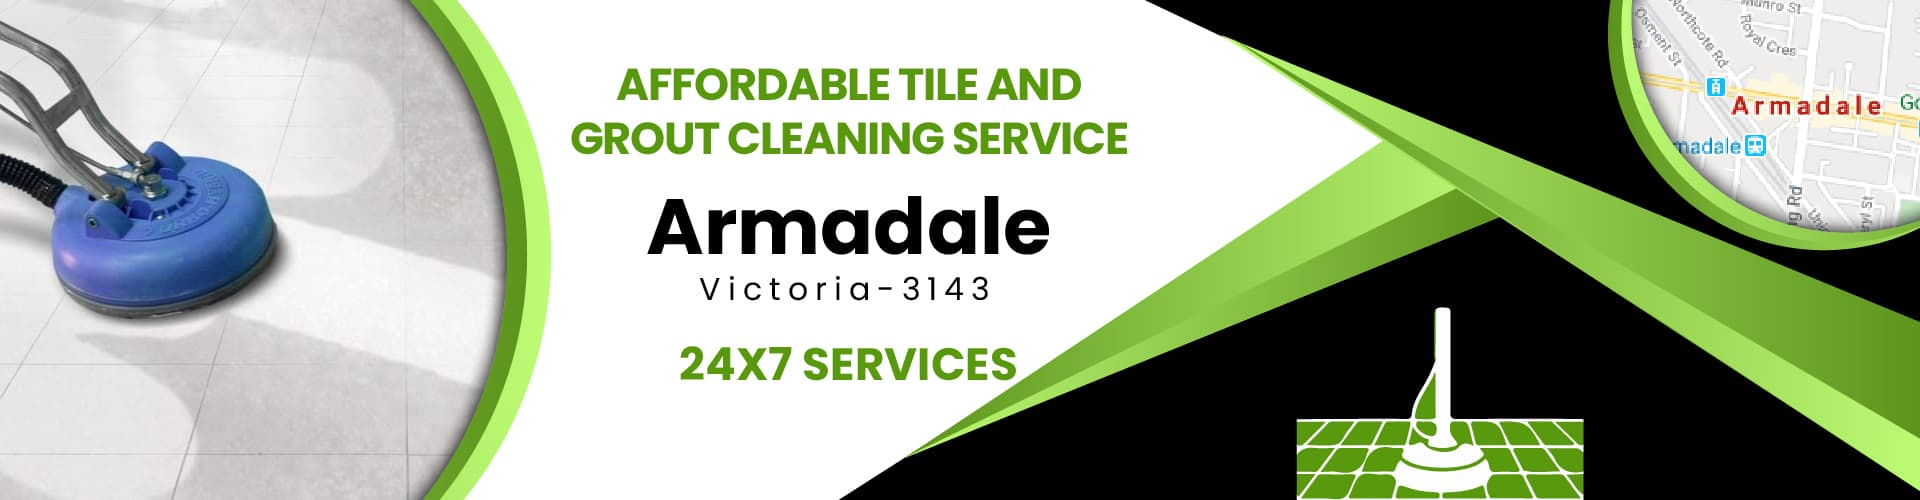 Tile and Grout Cleaning Armadale